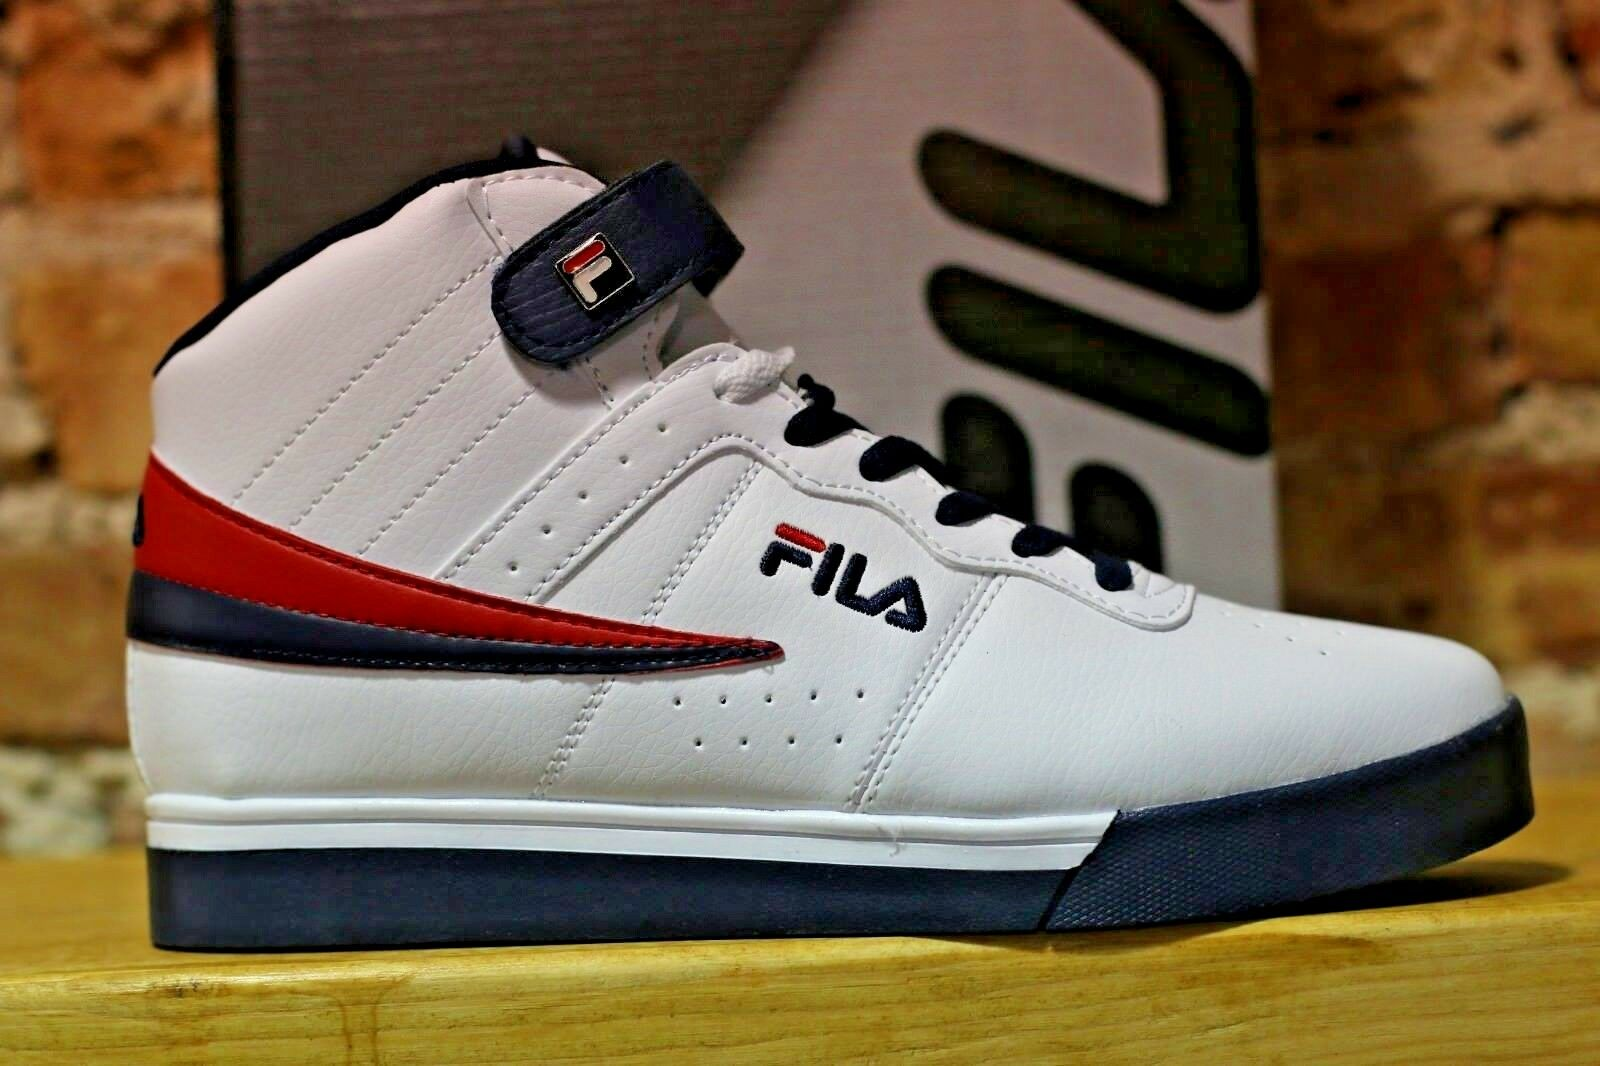 082ee6bc7e Mens Fila Vulc 13 Mid Plus Suede Leather Mid High Top Casual Athletic shoes  WBR. Mens NIKE AIR MAX ...